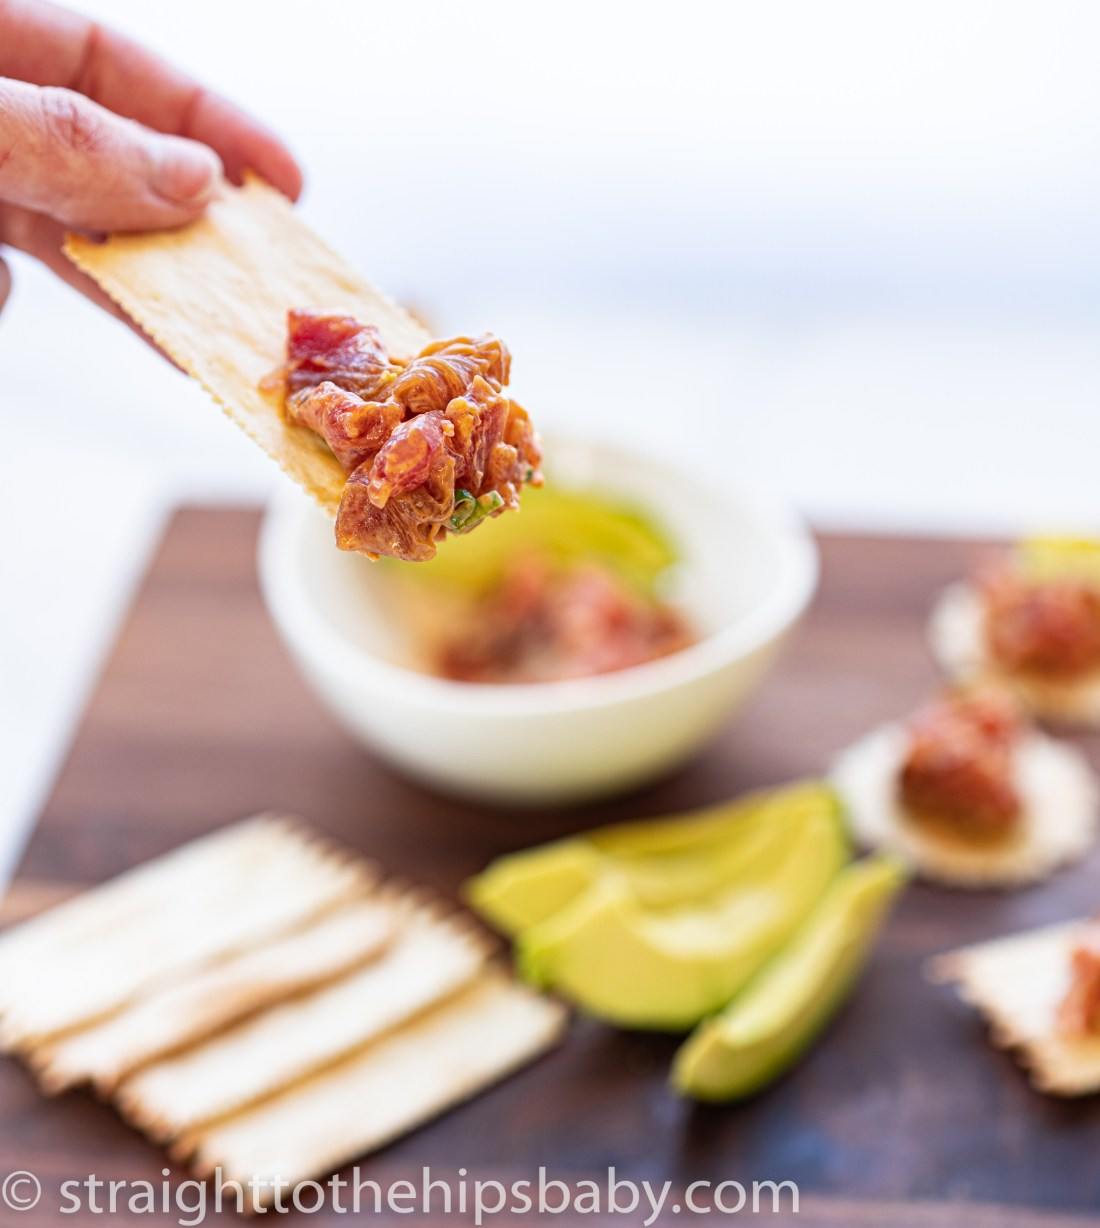 a woman's hand in the foreground, holding a cracker filled with tuna tartare. In the background, a blurred appetizer board with the same recipe